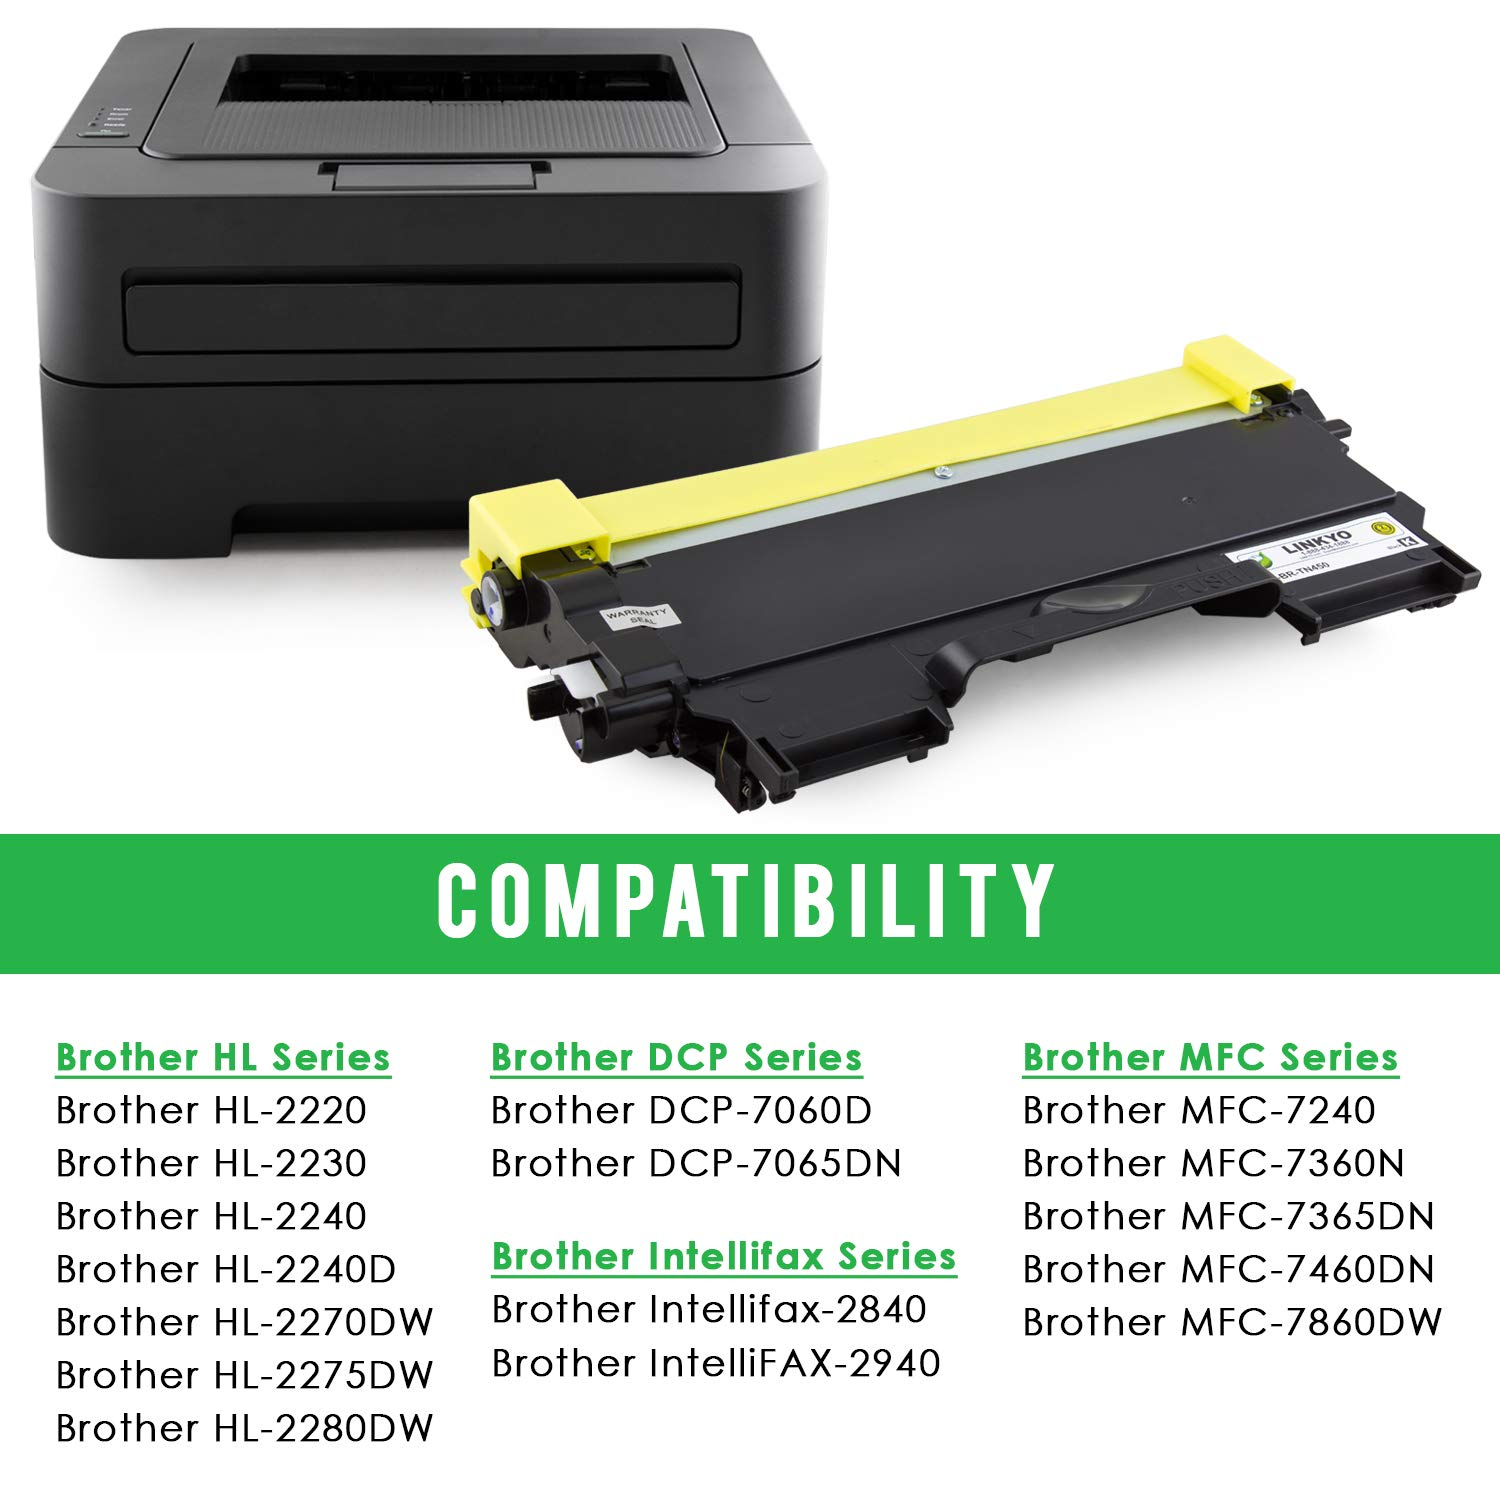 High Yield Toner Refill for HL-2230 with Reset Flag Gear MFC-7860DW HL-2240 DCP-7060 Lever Included DCP-7065DN TN-420, TN420 MFC-7360 HL-2270 MFC-7460DN HL-2280 DCP-7060D Compatible with Brother TN-450 TN450